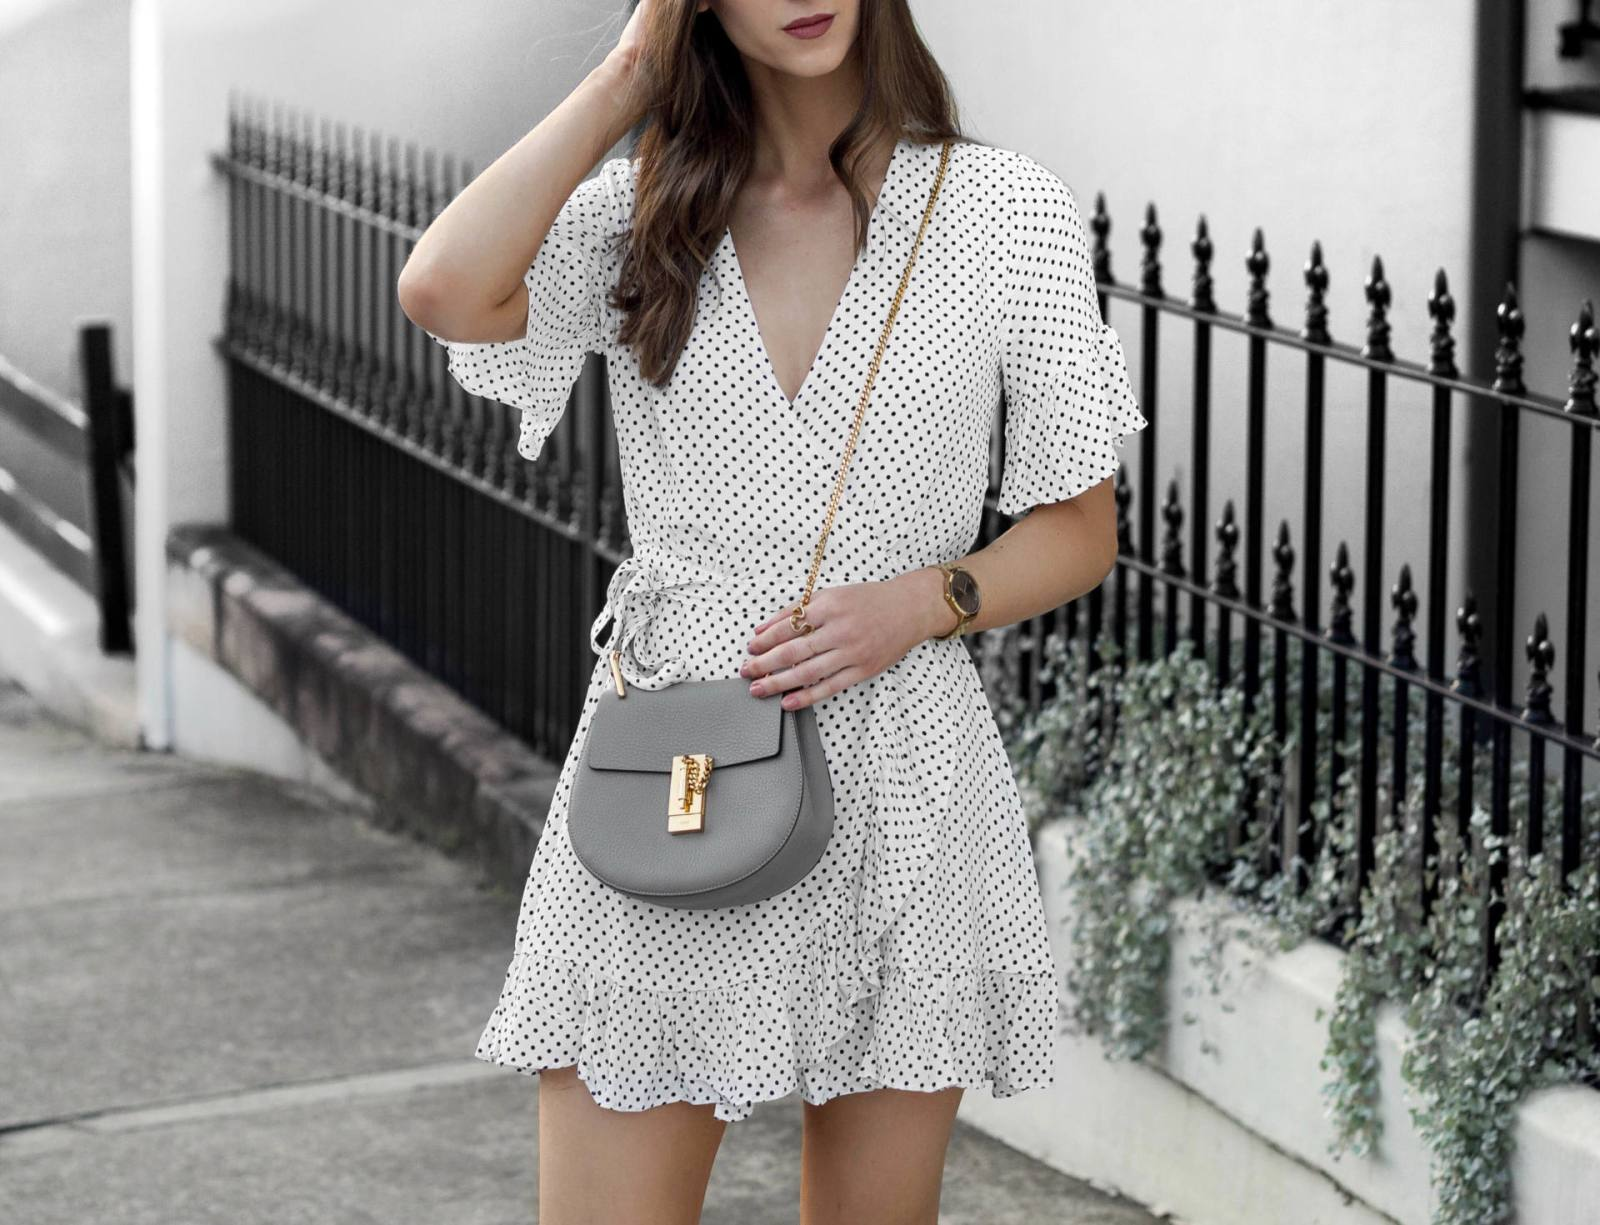 Summer Dress Chloe Drew Bag Taupe Grey Outfit